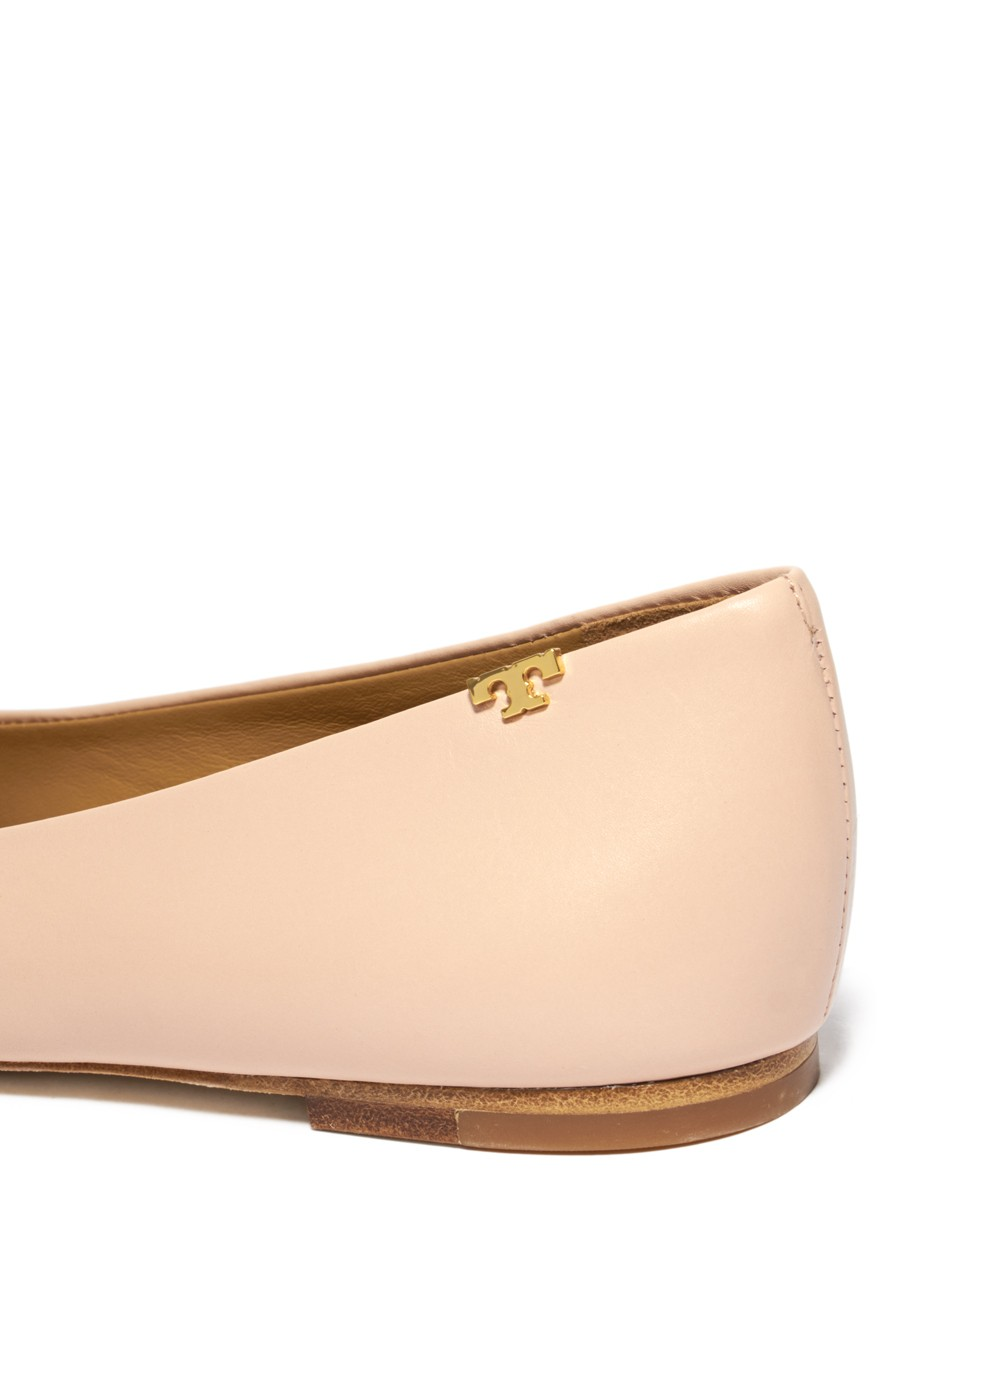 【最大48%OFF】PENELOPE CAP-TOE FLAT|SEA SHELL PINK/PERFECT BLACK|フラットシューズ|Tory Burch